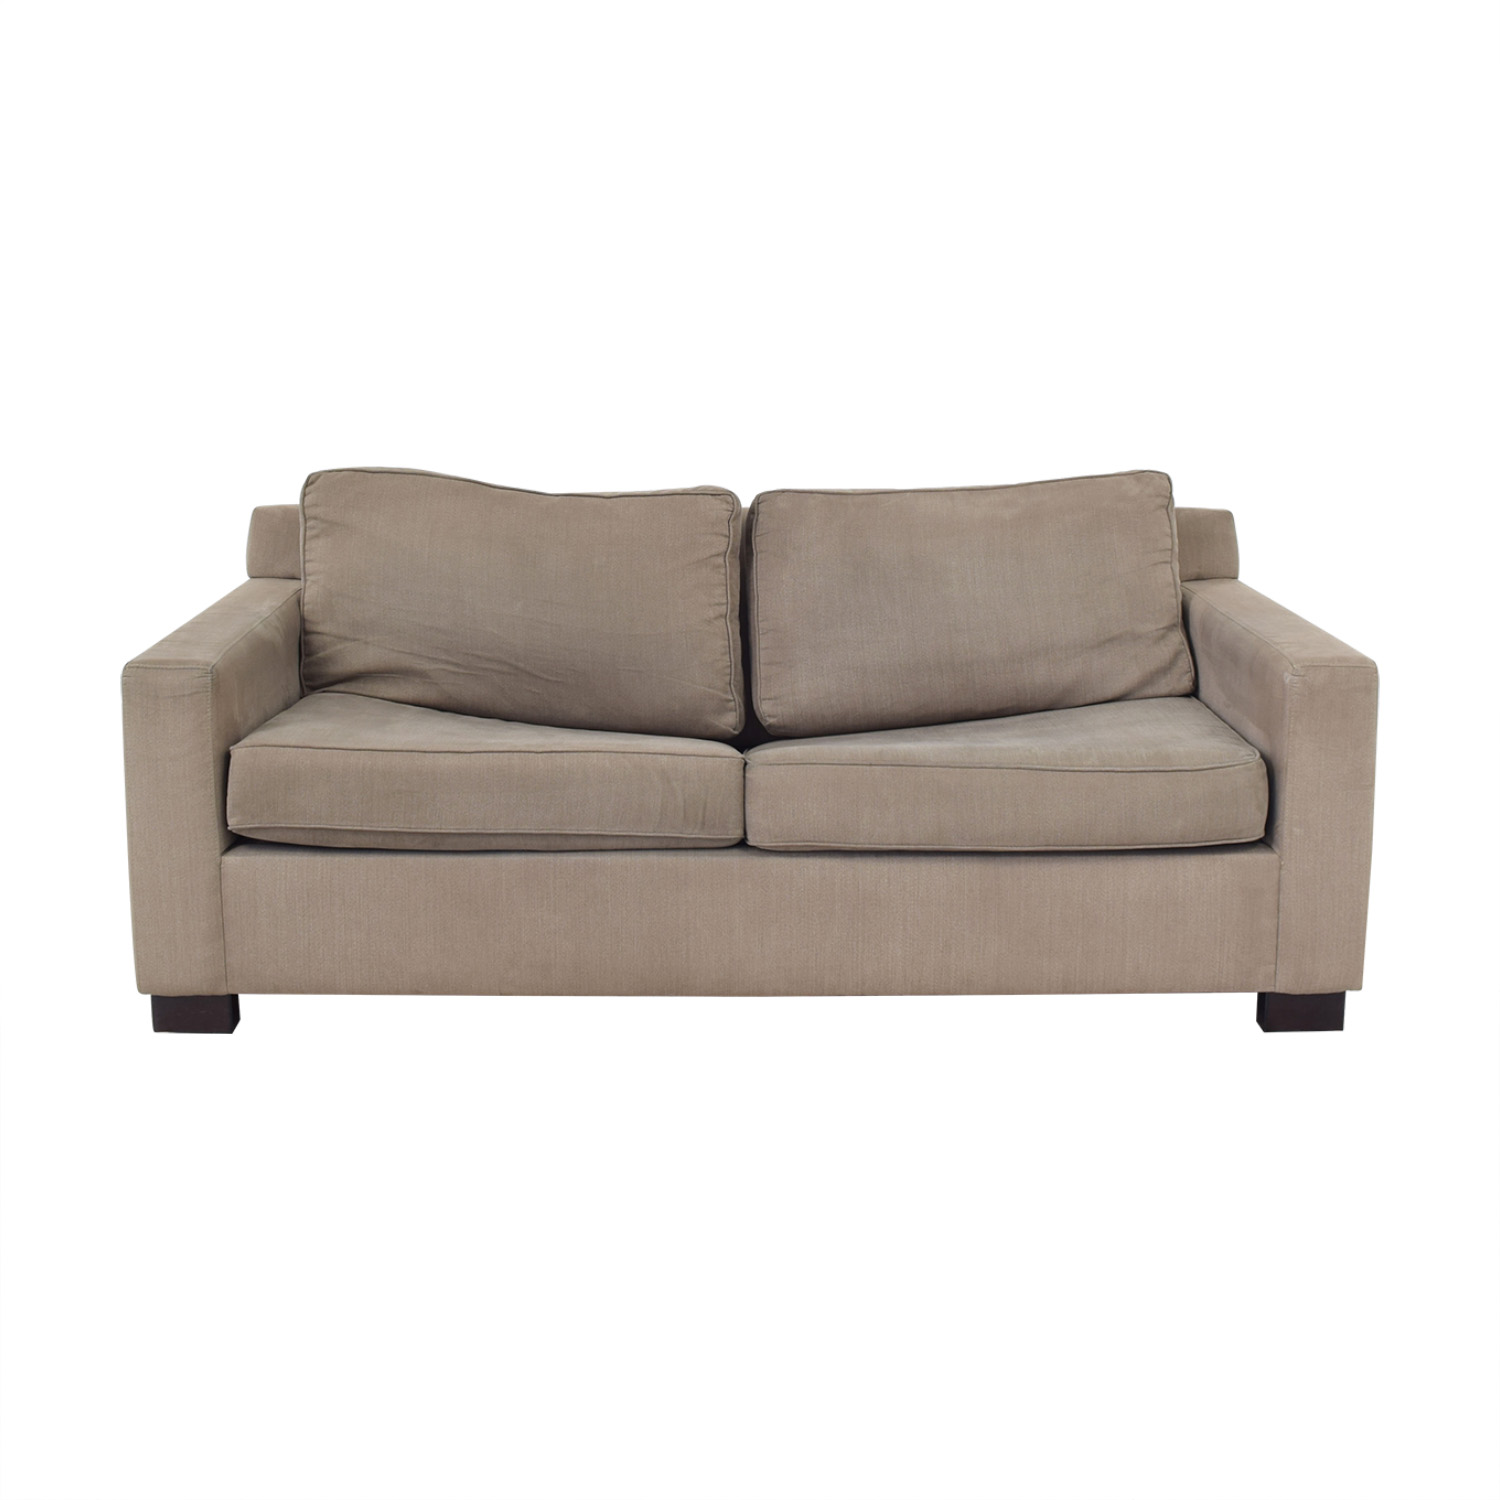 Urban Barn Urban Barn Apartment Sleeper Sofa & Ottoman discount